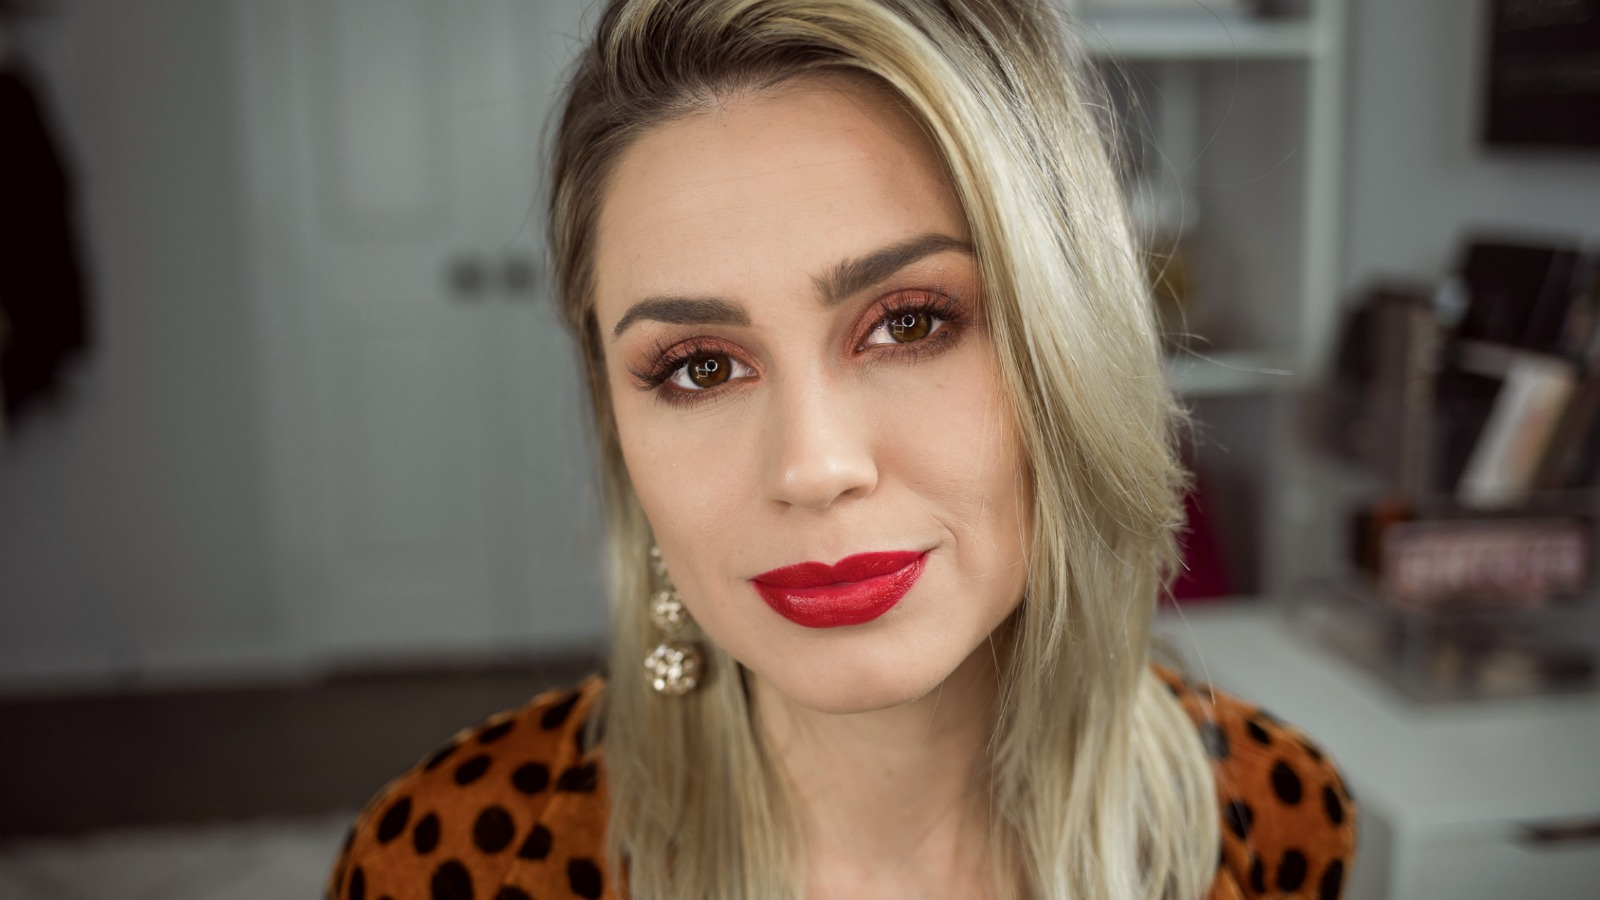 Houston Beauty Blogger Uptown with Elly Brown shares her tips and tricks on How To Make Your Makeup Last All Day even during the busy holiday season!